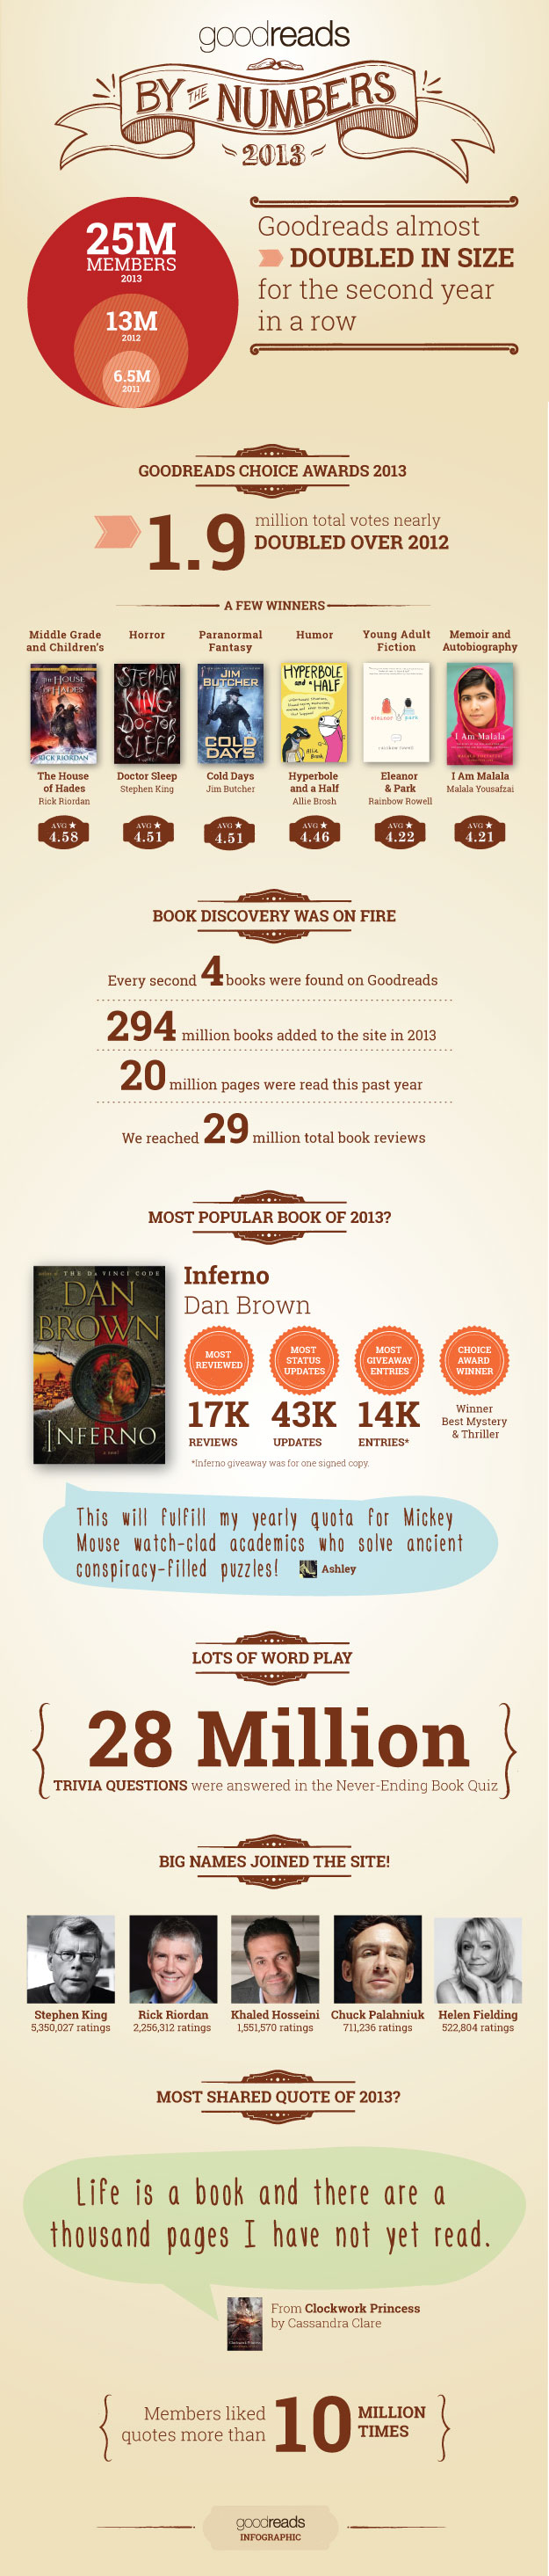 goodreads-infographic